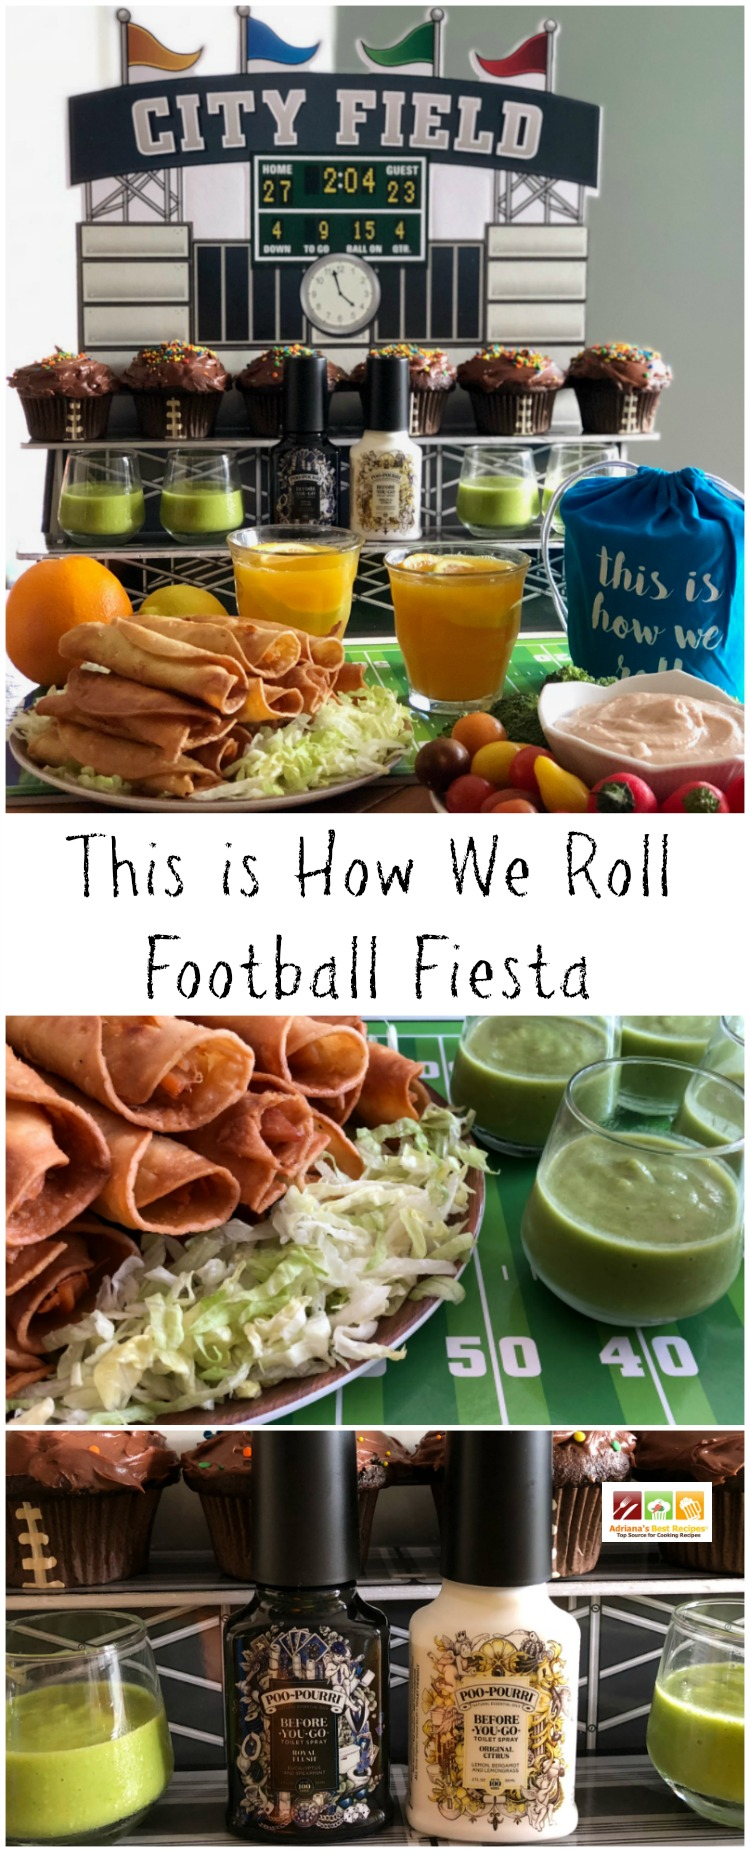 Learn how we roll when organizing a football fiesta at home. Suggesting crispy chicken taquitos, guacamole sauce, pinto bean hummus, sparkly orangeade, and chocolate cupcakes.